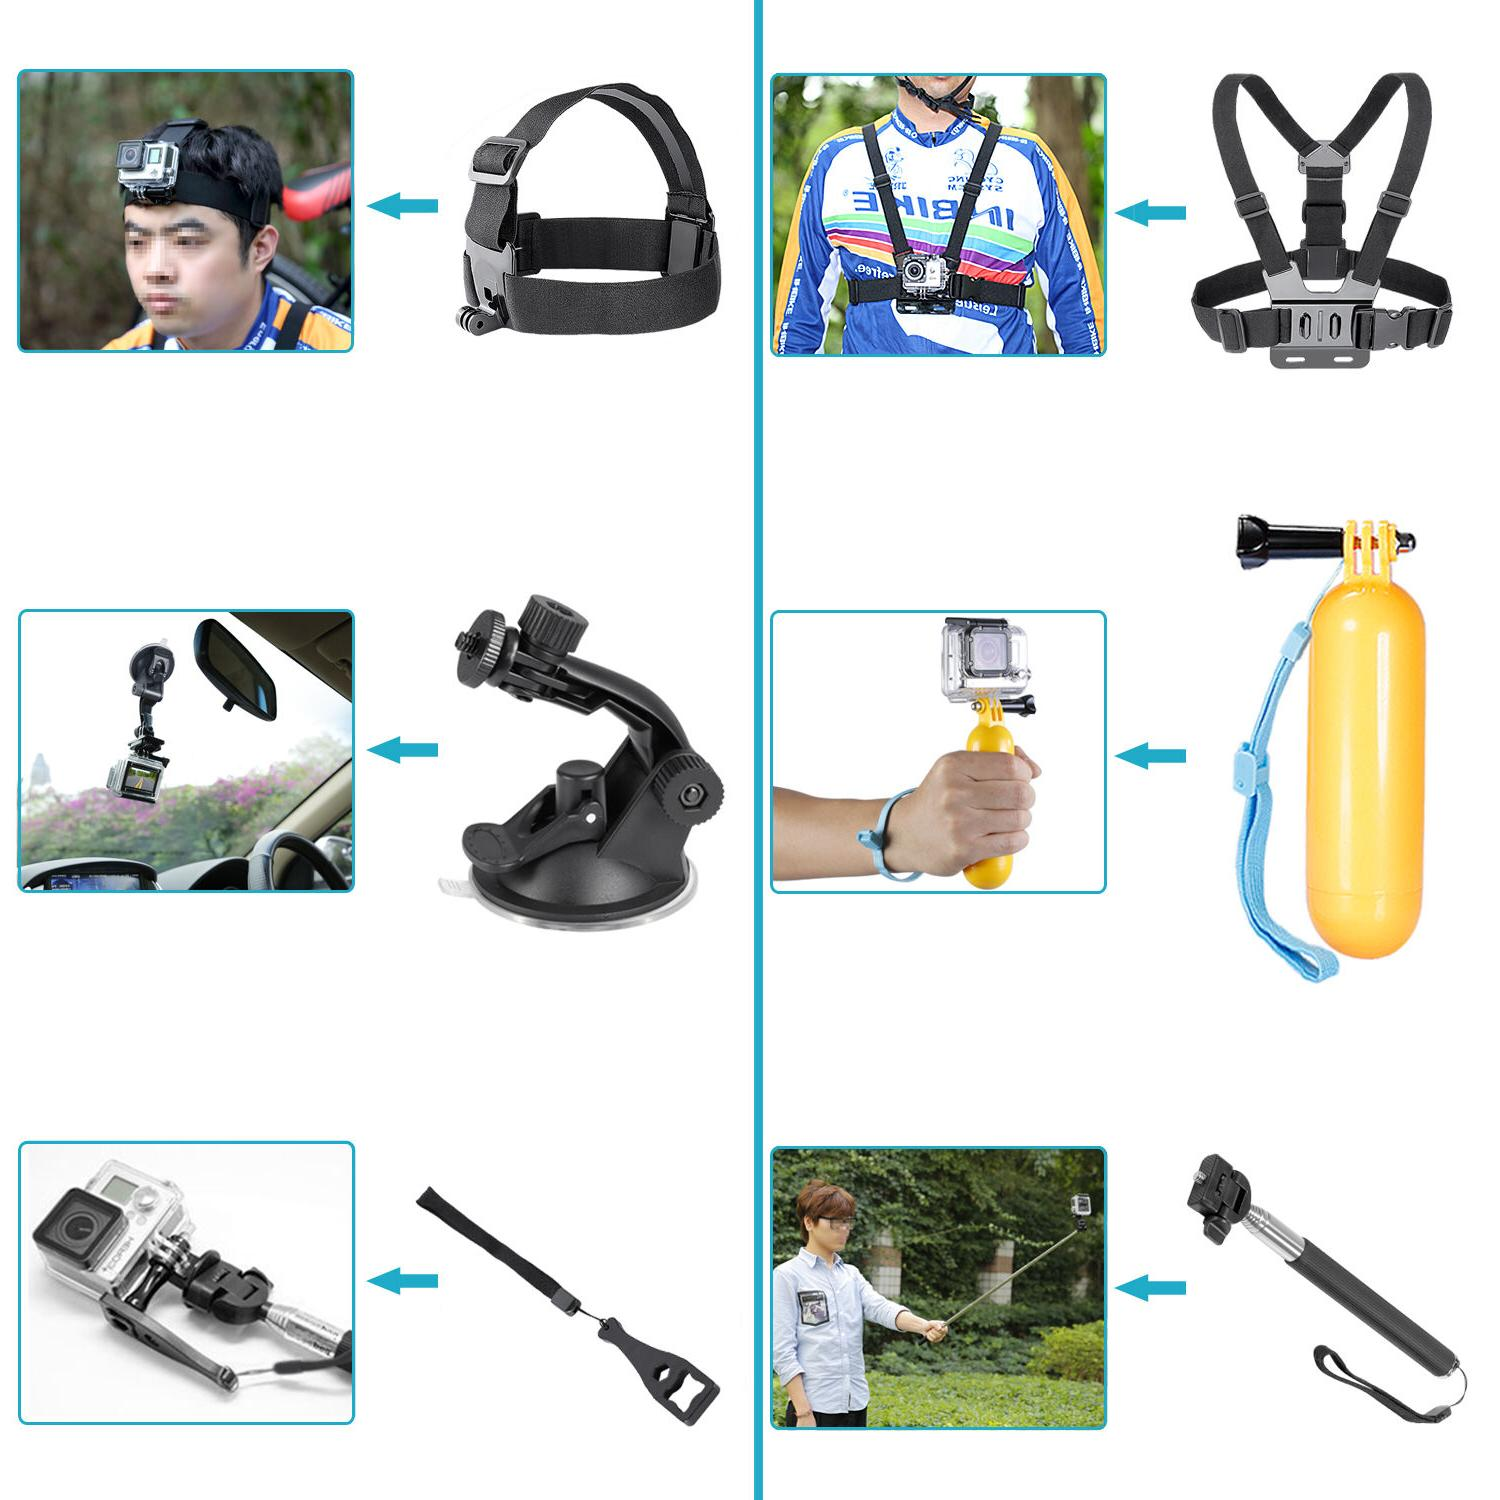 Neewer Accessories for GoPro Hero Black 3+ 3